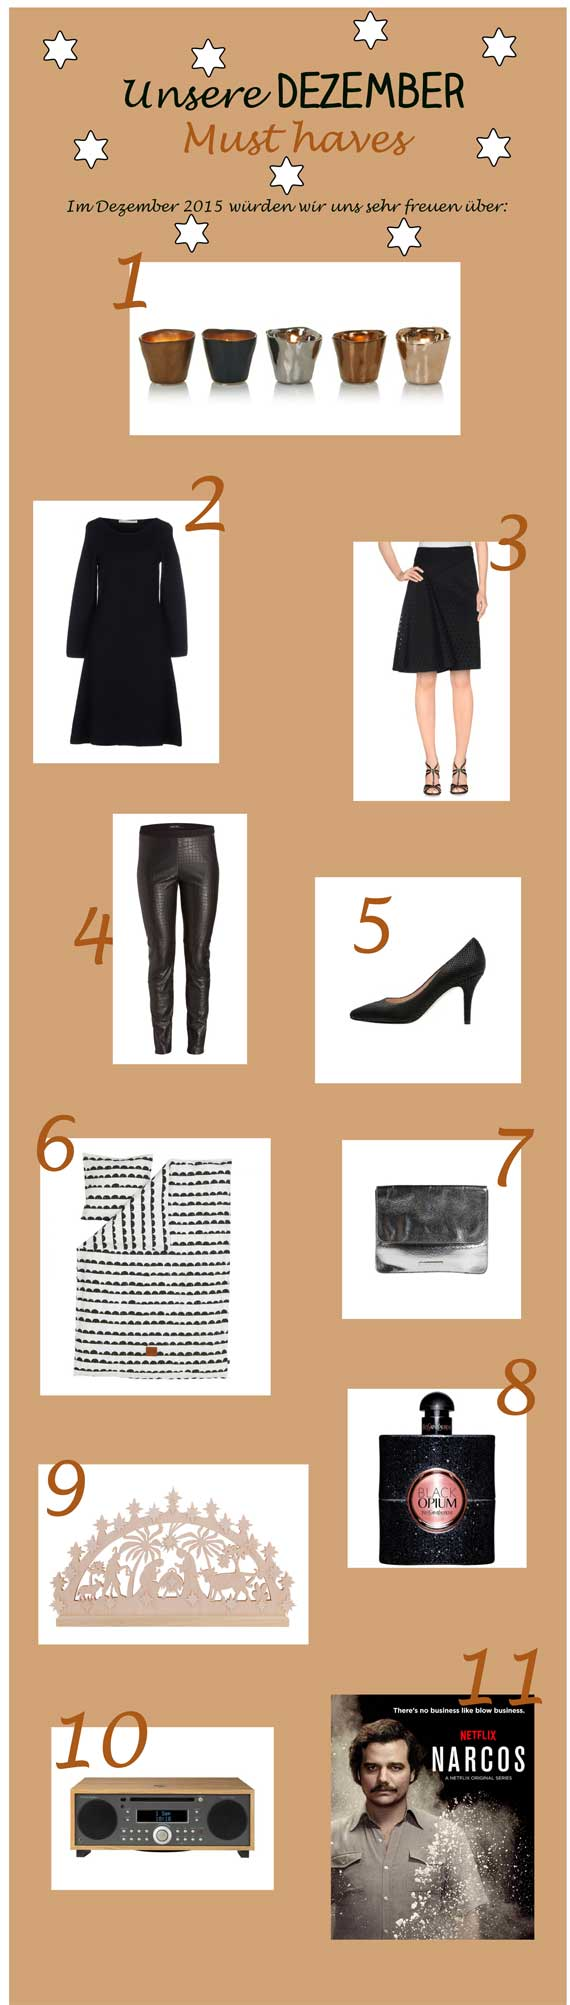 Dezember-Must-haves-2015-Stern